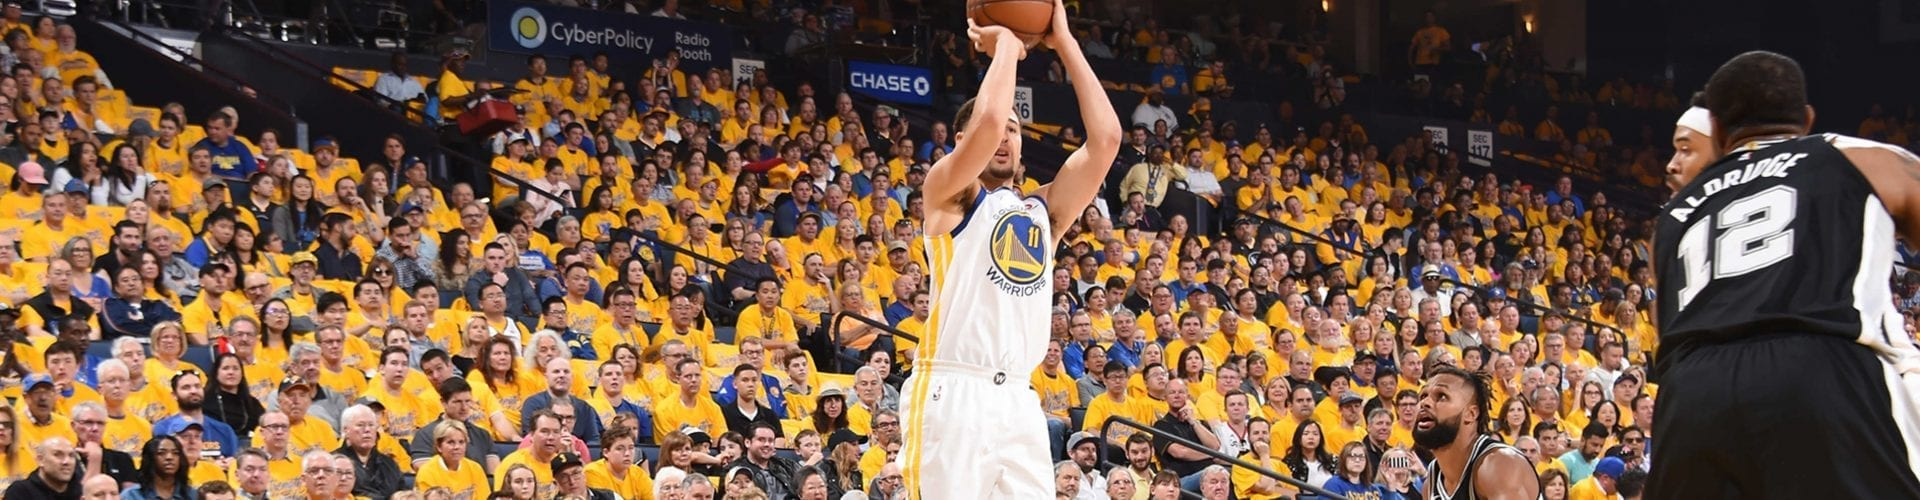 Free Warriors Tickets Leads To Requested City Policy Change In Oakland